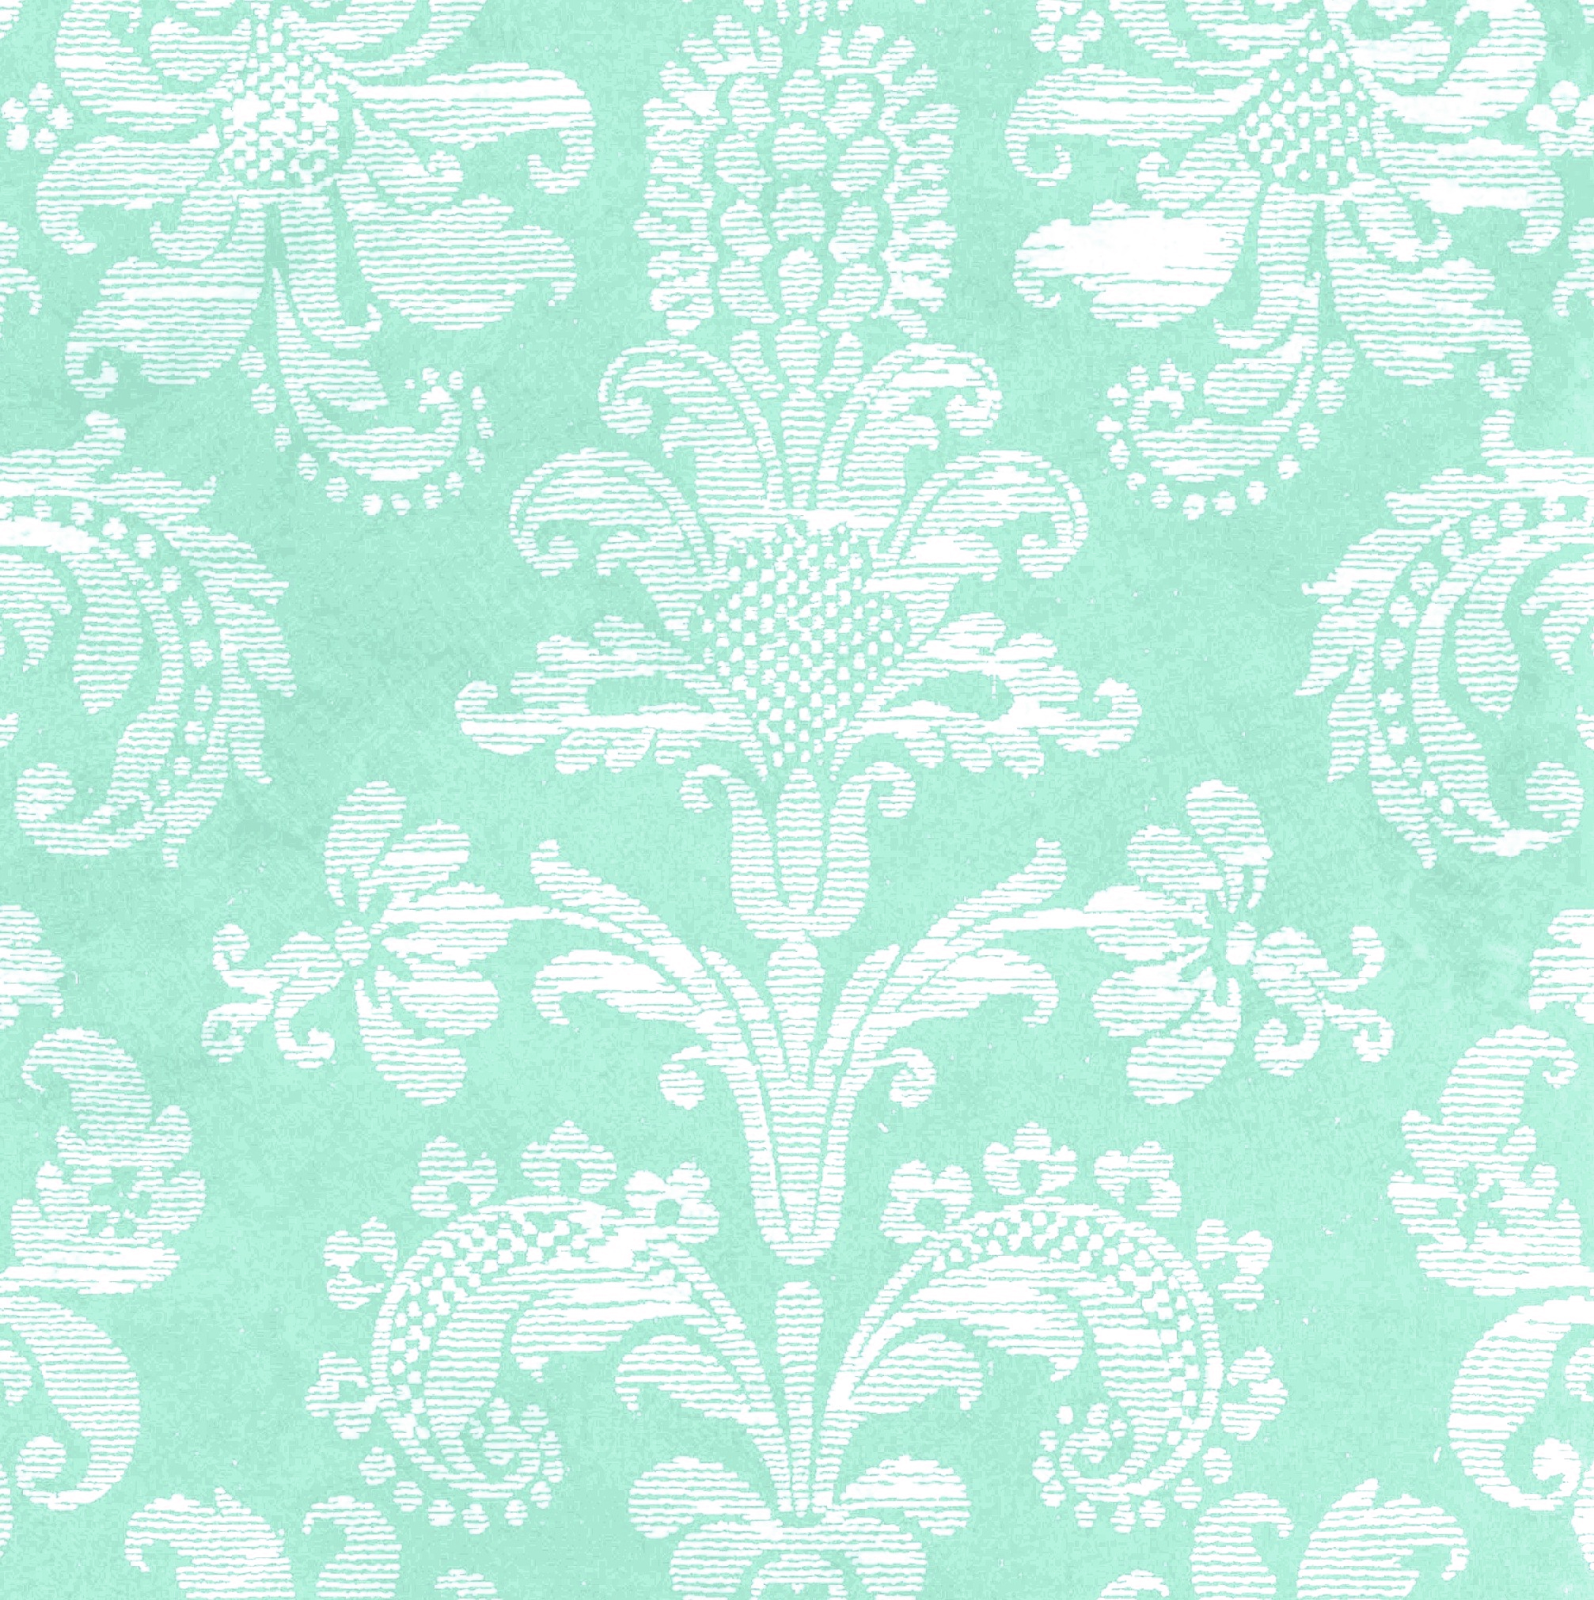 Mint Colored Wallpaper - WallpaperSafari